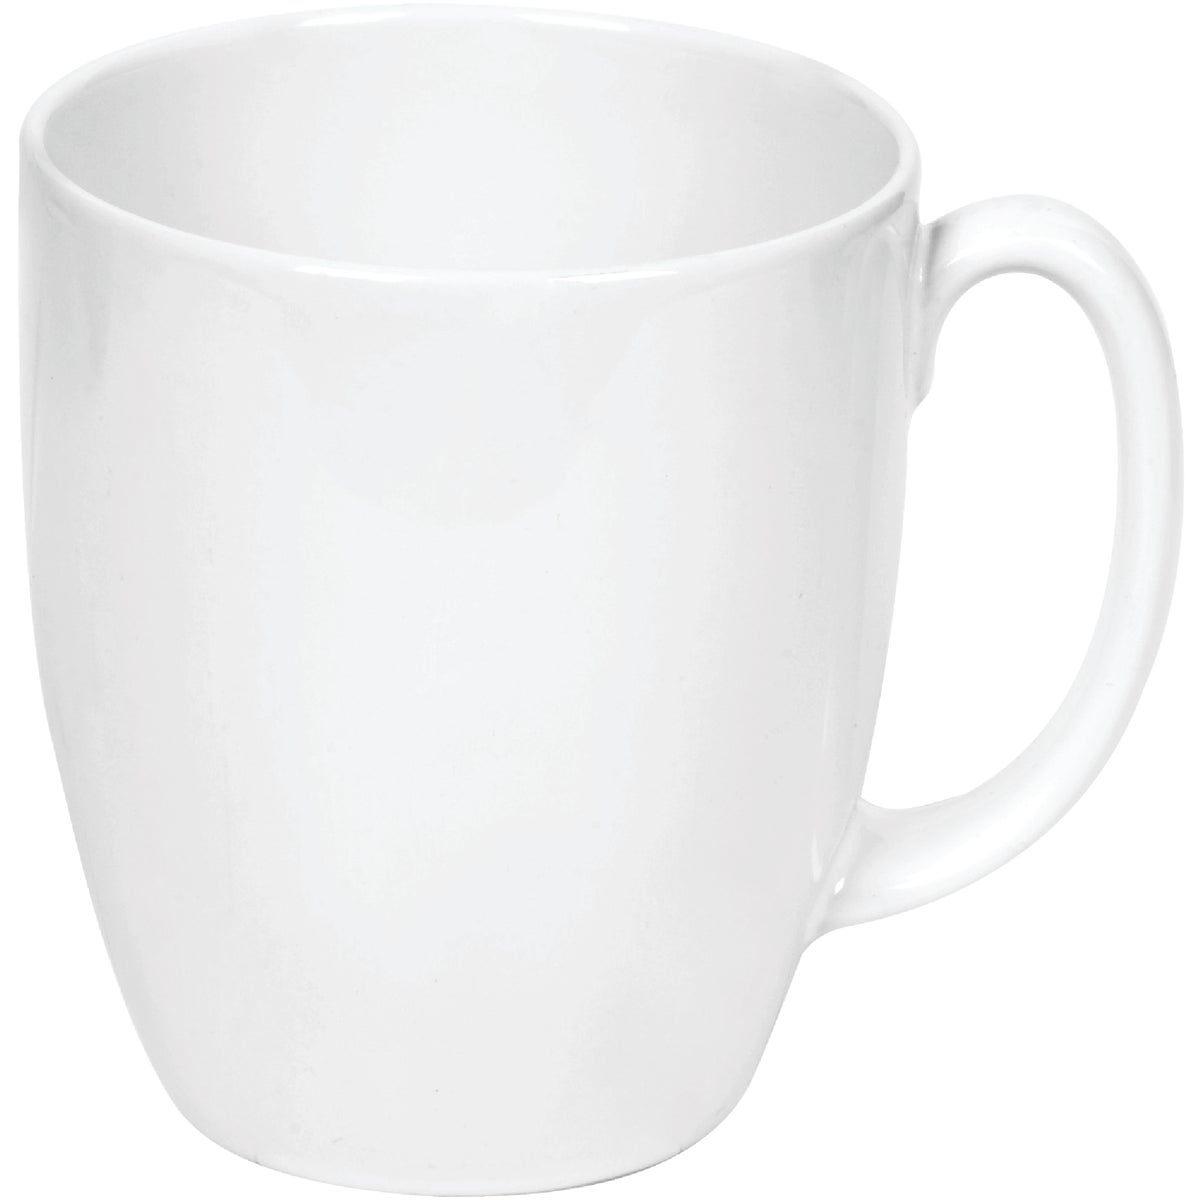 11OZ WHITE MUG - 6022022 by World Kitchen